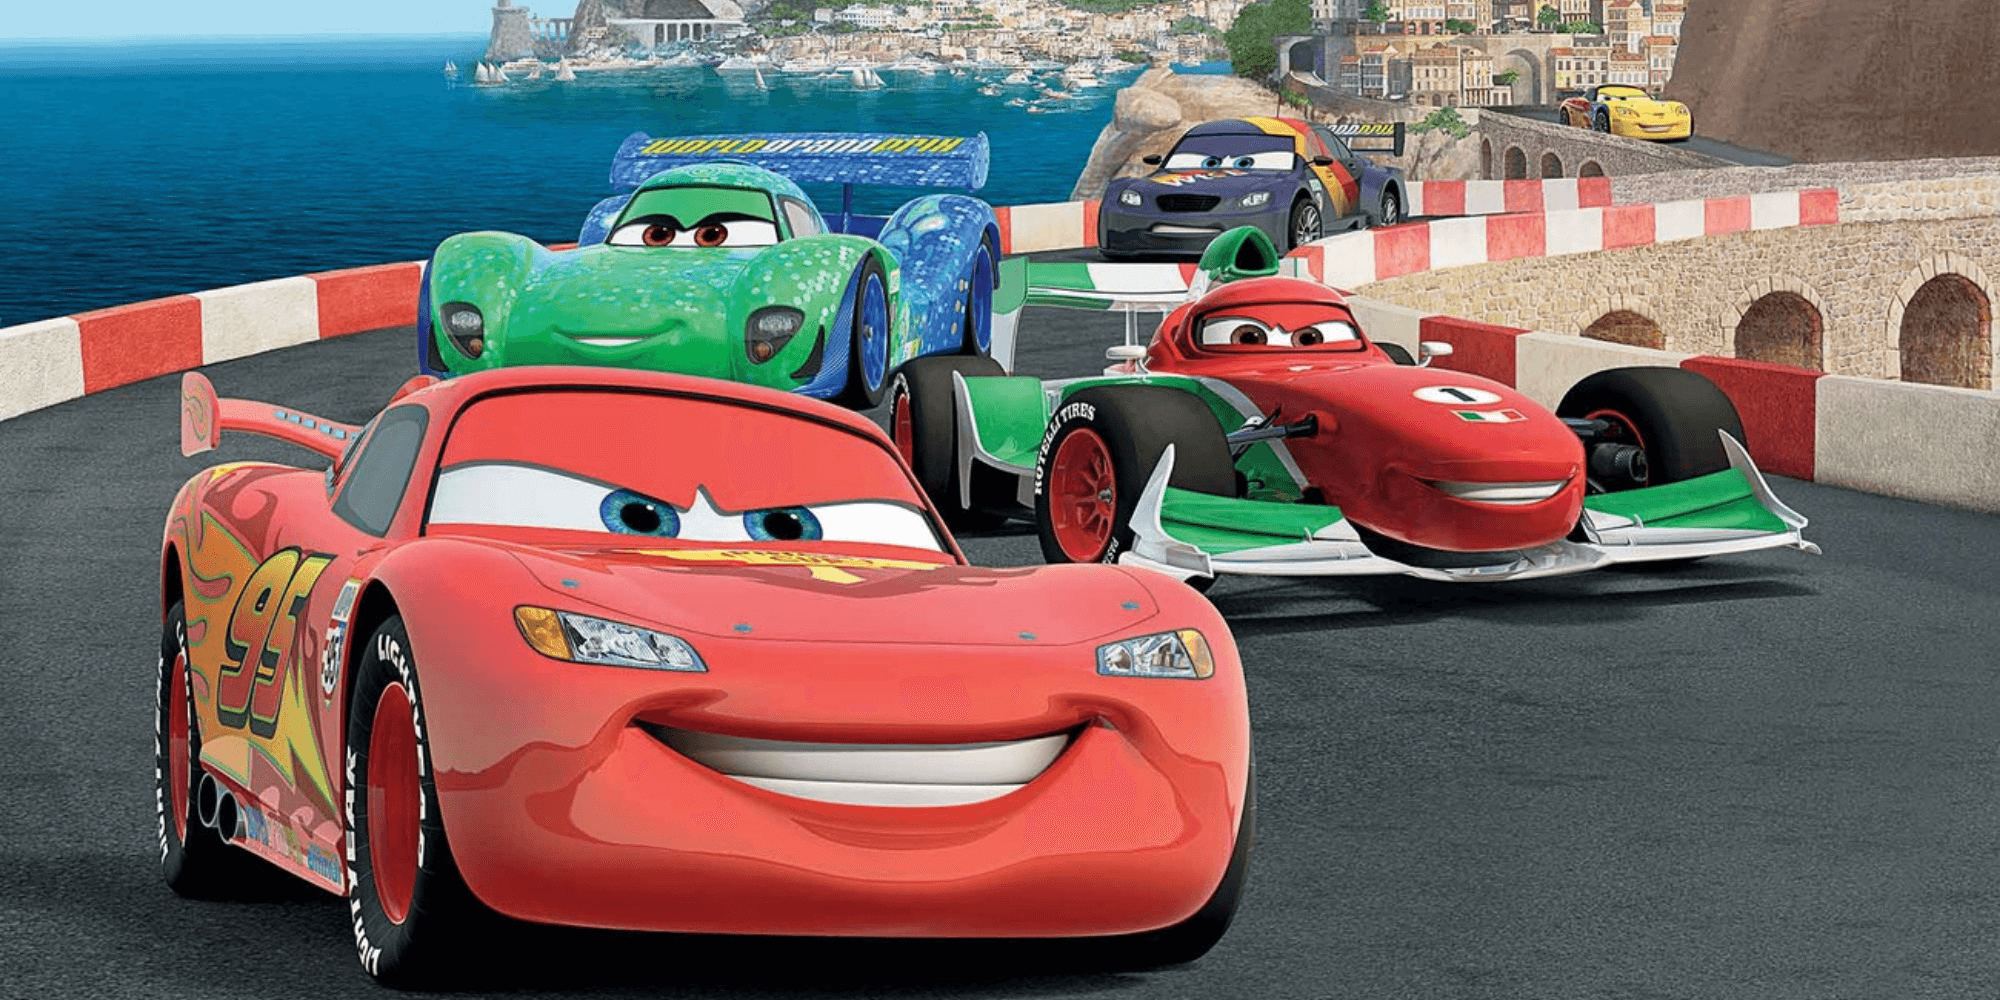 Lightening McQueen and other racers from Cars